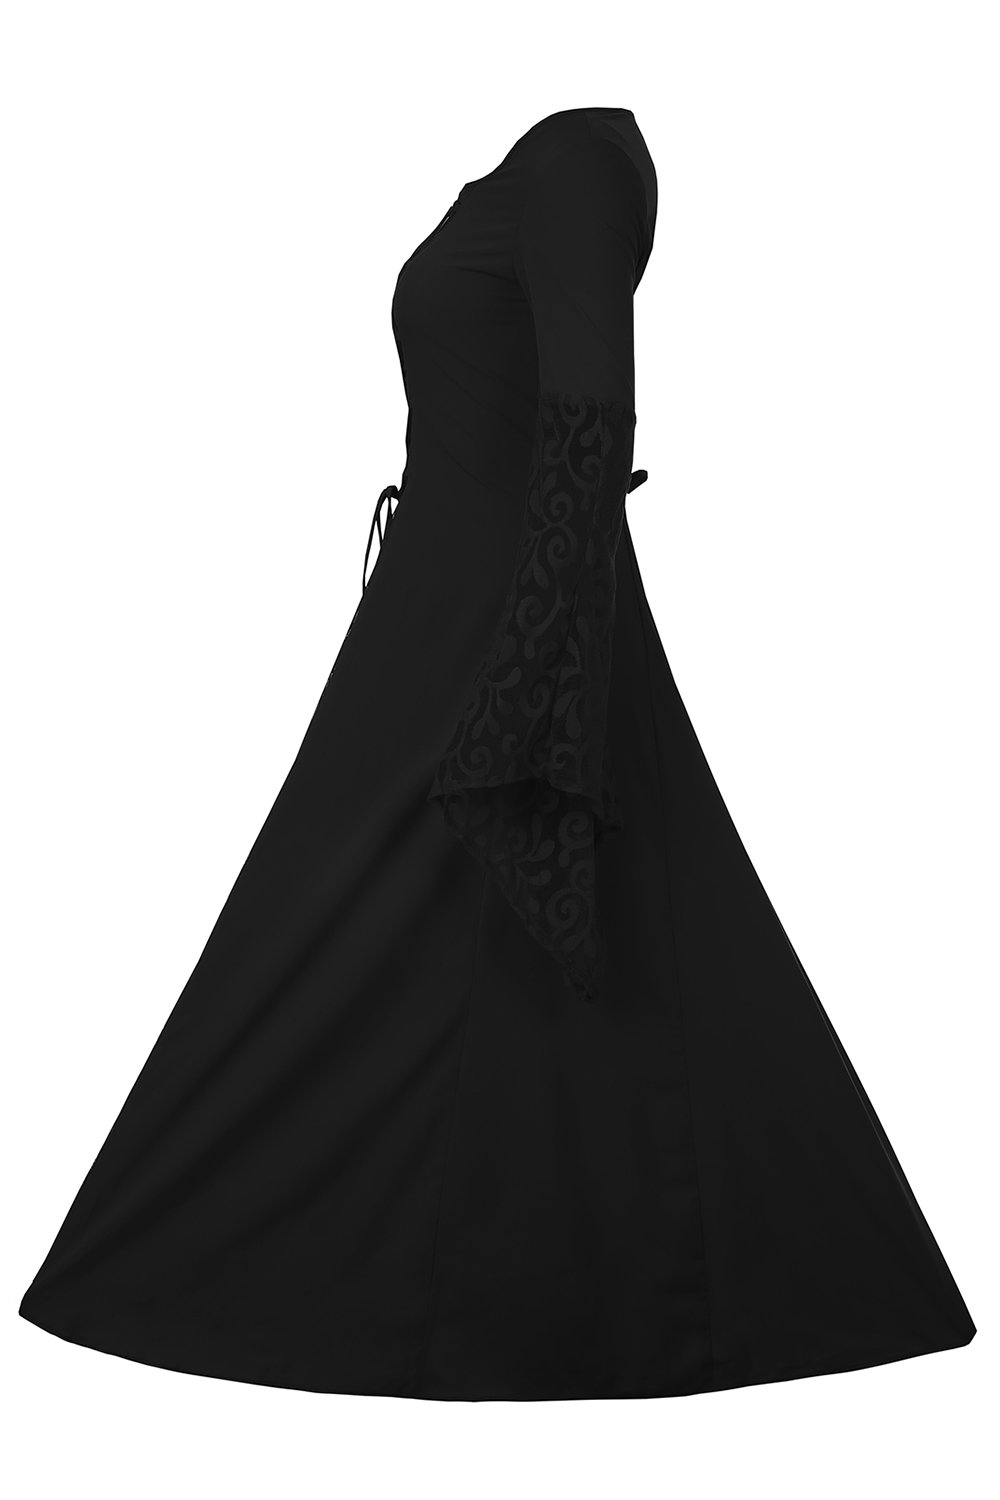 EastLife Women's Halloween Costumes Renaissance Medieval Dress Lace Up Vintage Floor Length Long Witch Dresses, Black, XXL by EastLife (Image #3)